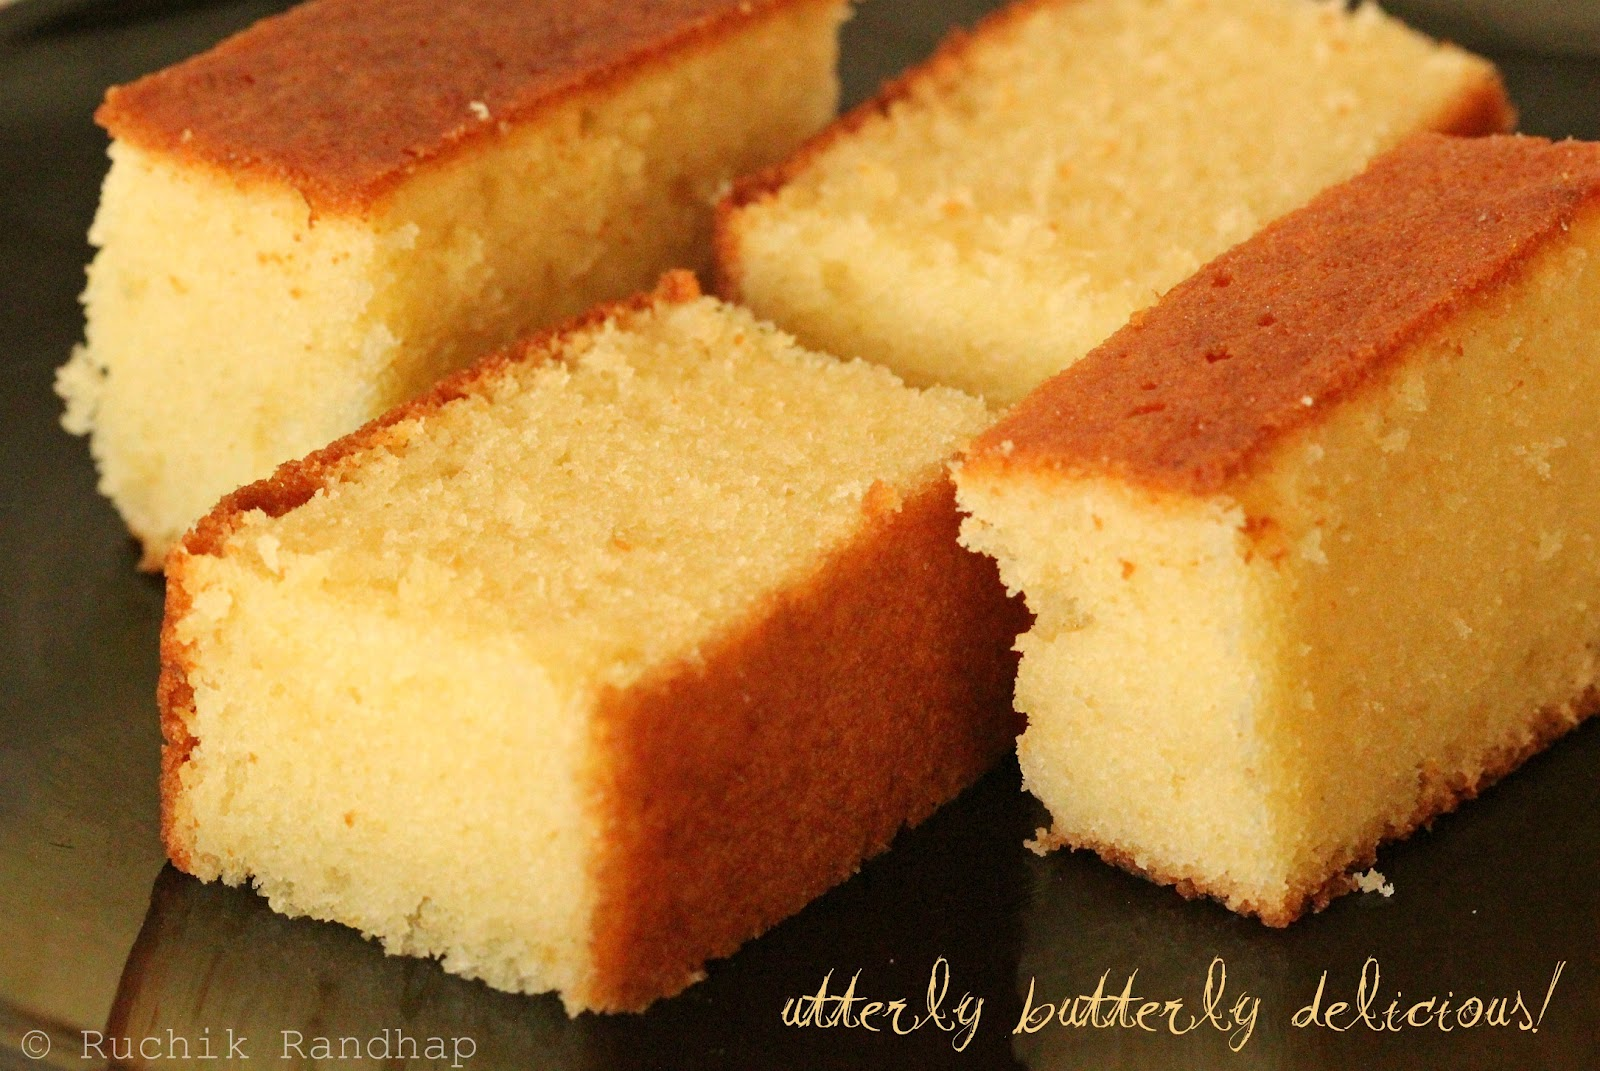 Butter cake simply delicious ruchik randhap for Easy basic cake recipes from scratch